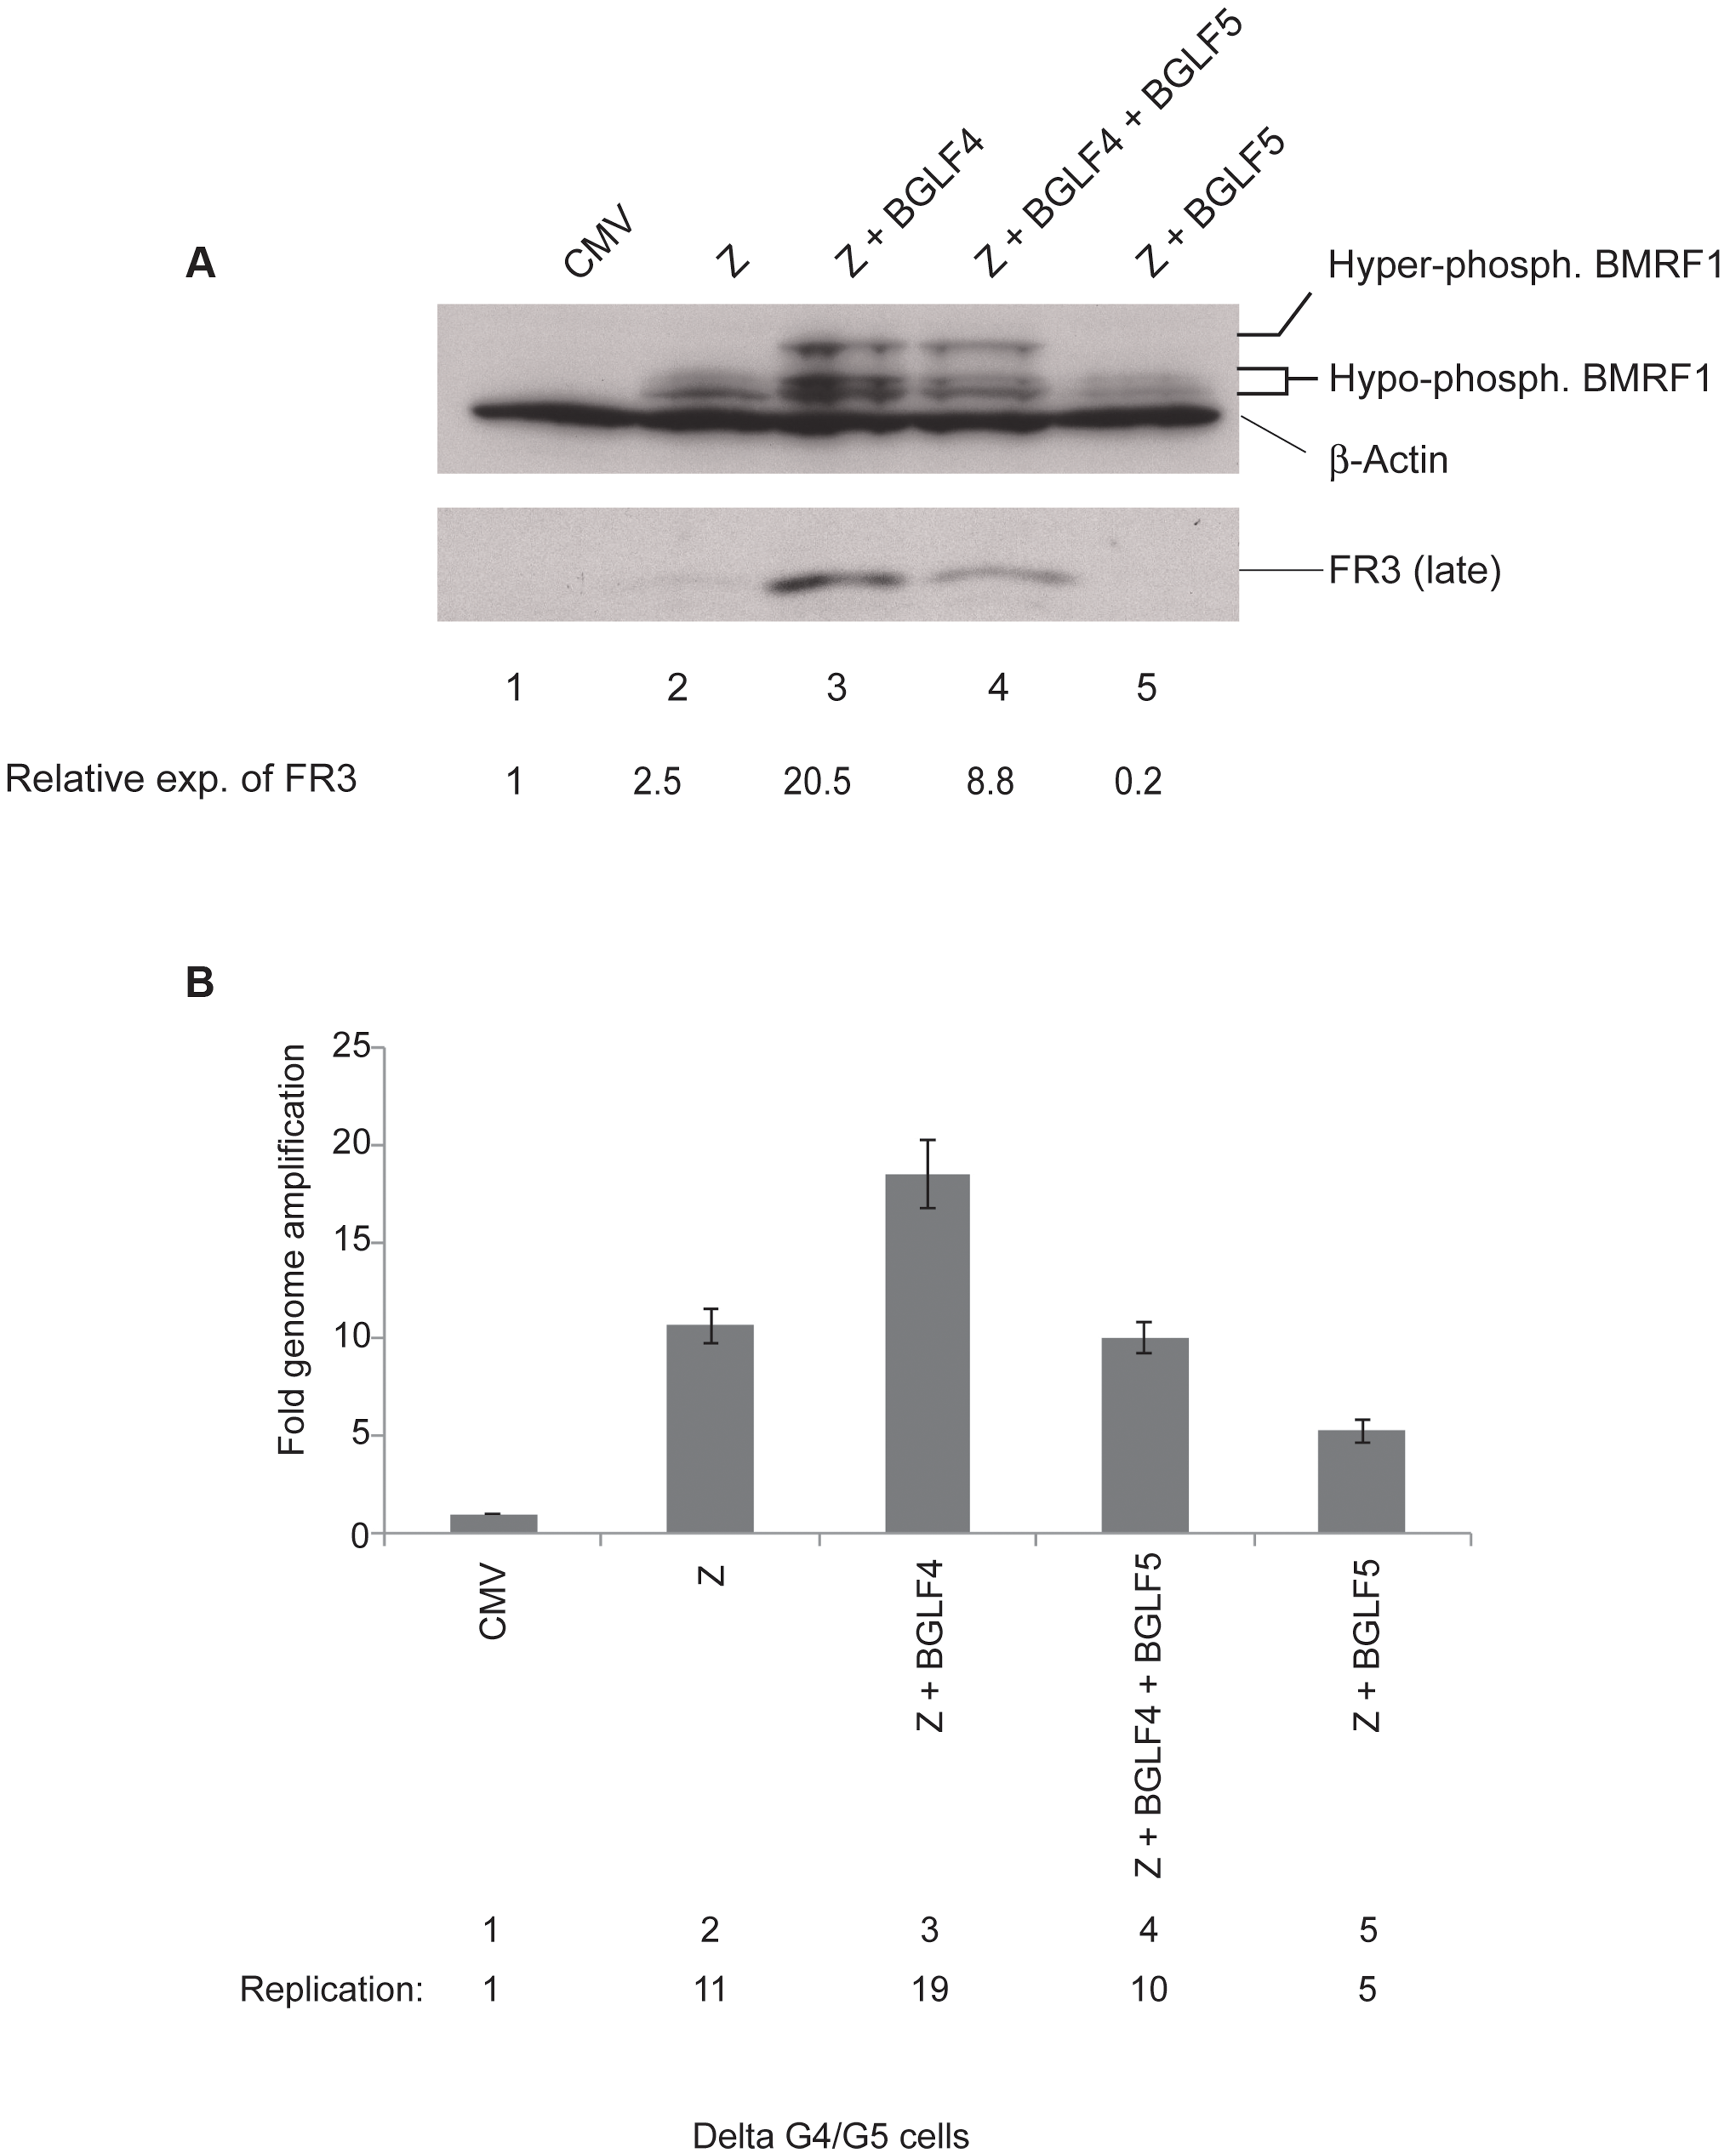 BGLF4 markedly enhances expression of the BFRF3 late protein.